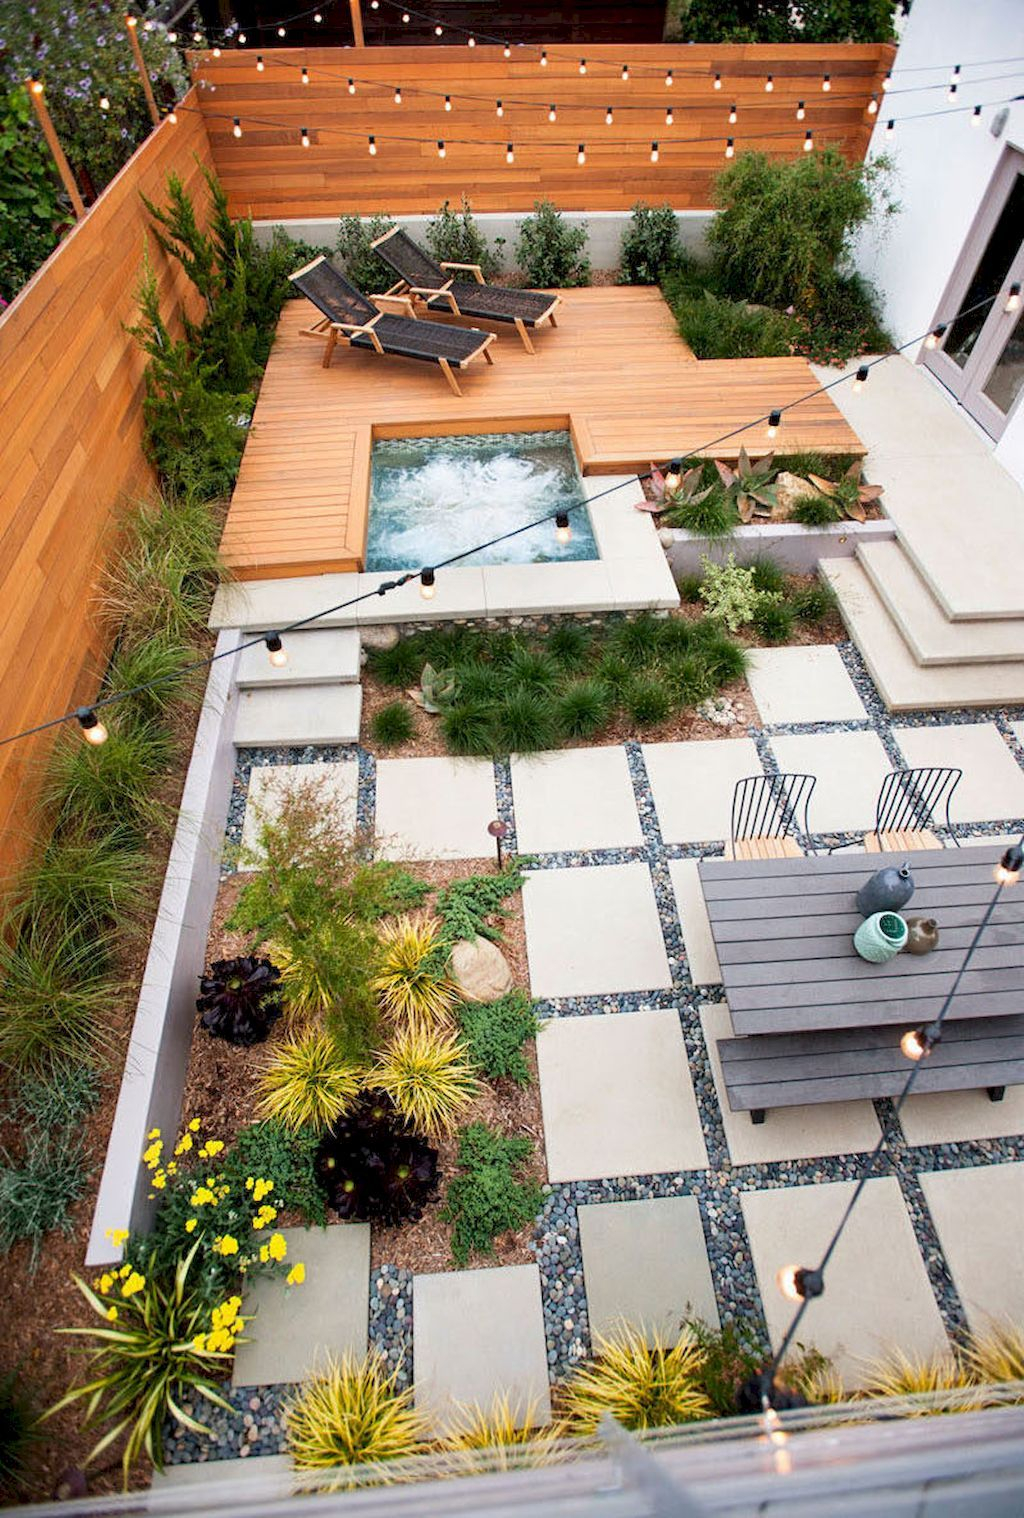 80 Small Backyard Landscaping Ideas On A Budget For The Home pertaining to 13 Smart Initiatives of How to Make Backyard Landscape Design Ideas On A Budget